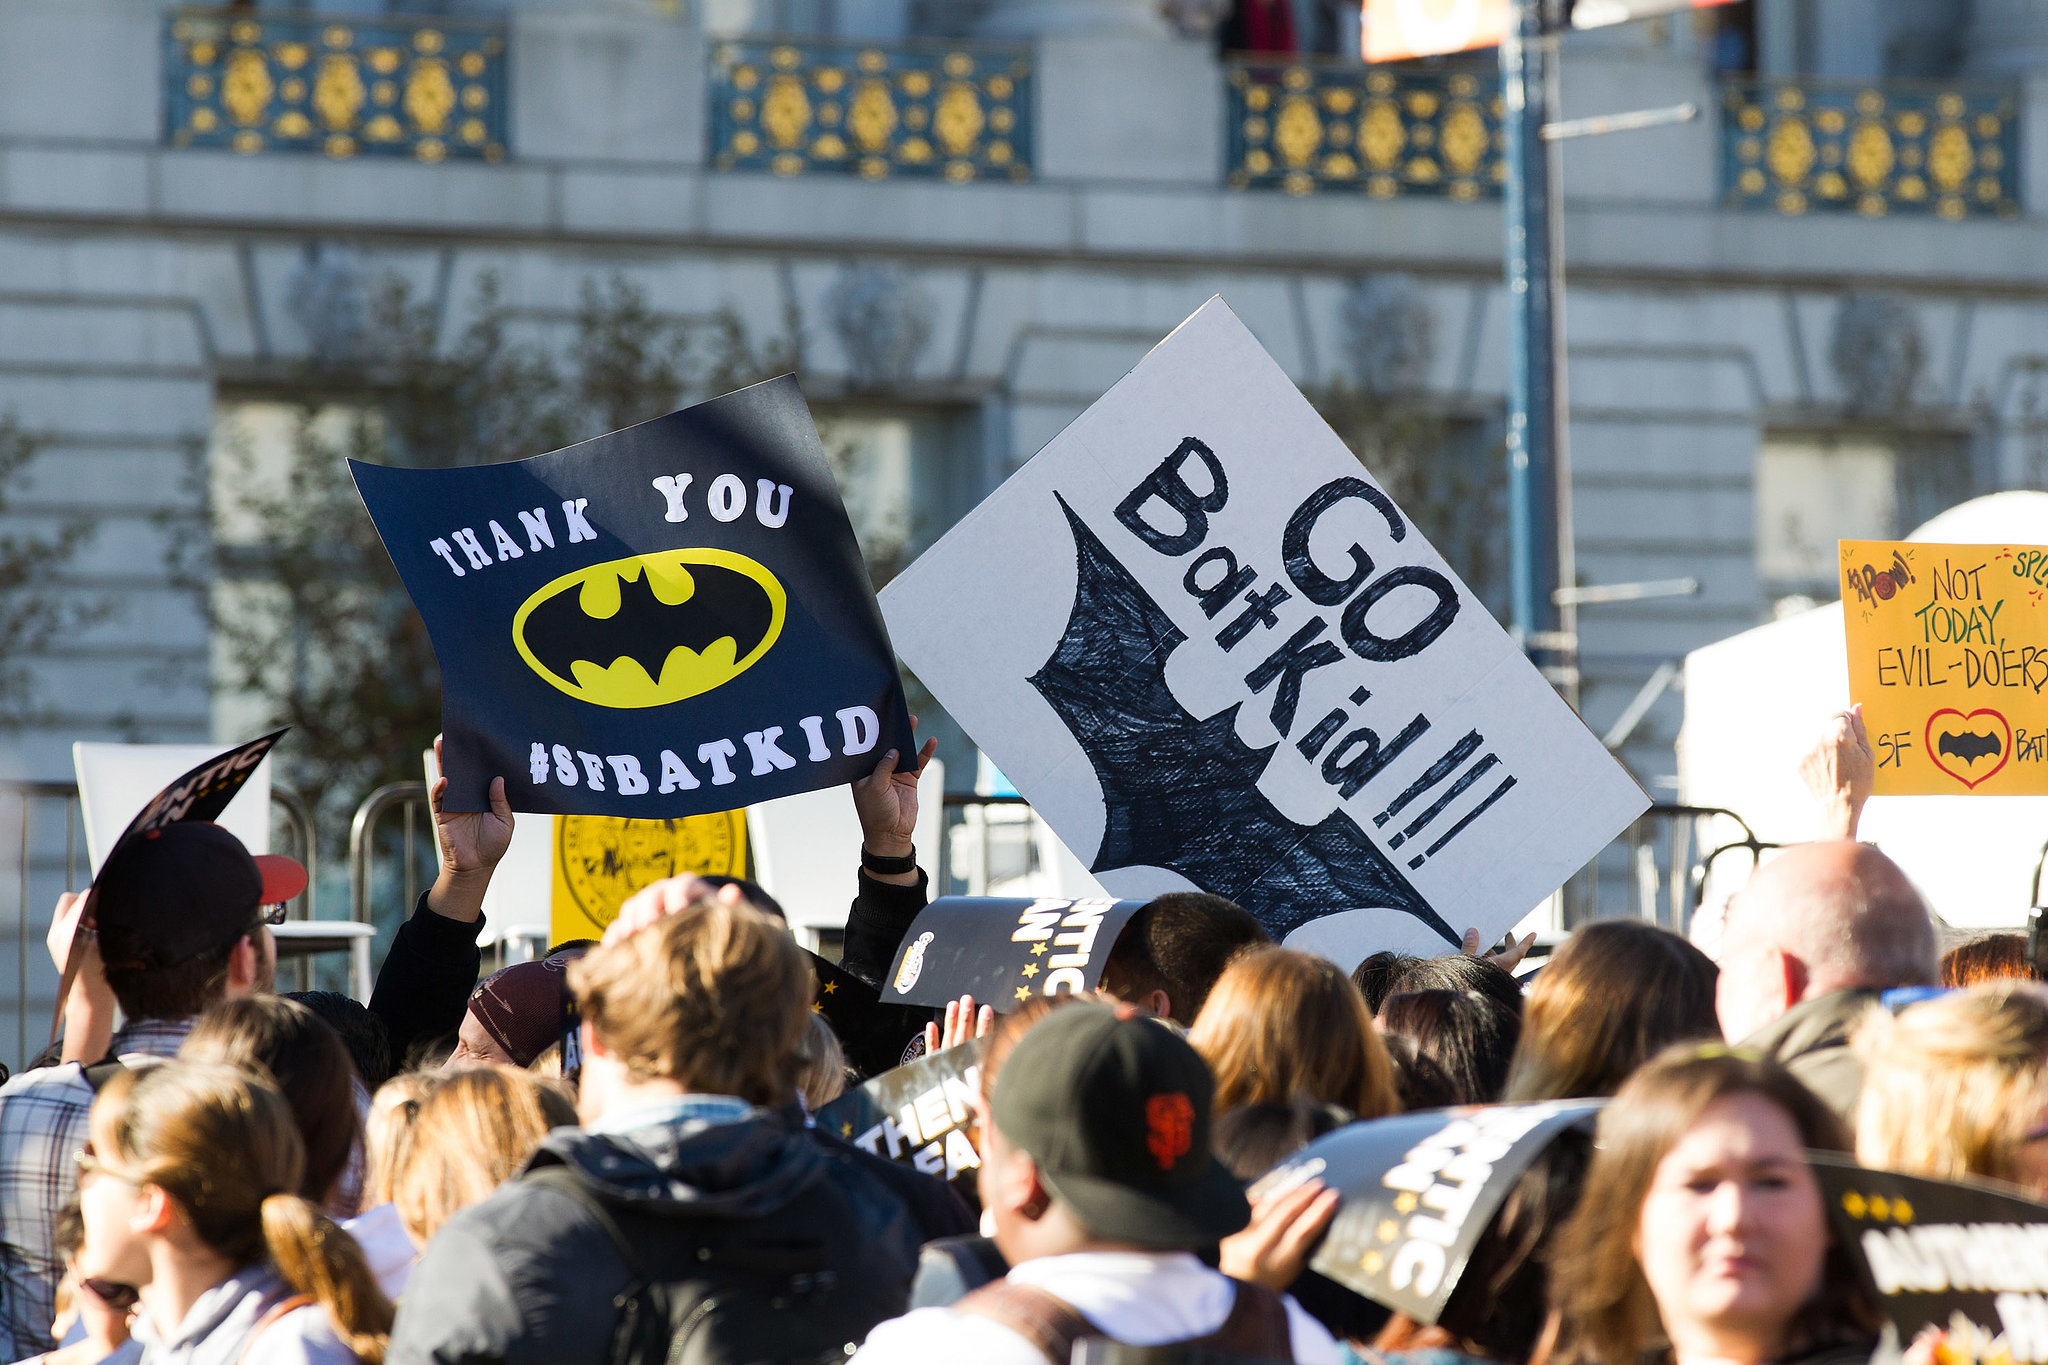 Signs for Batkid filled the crowd, which cheered as he arrived at City Hall.